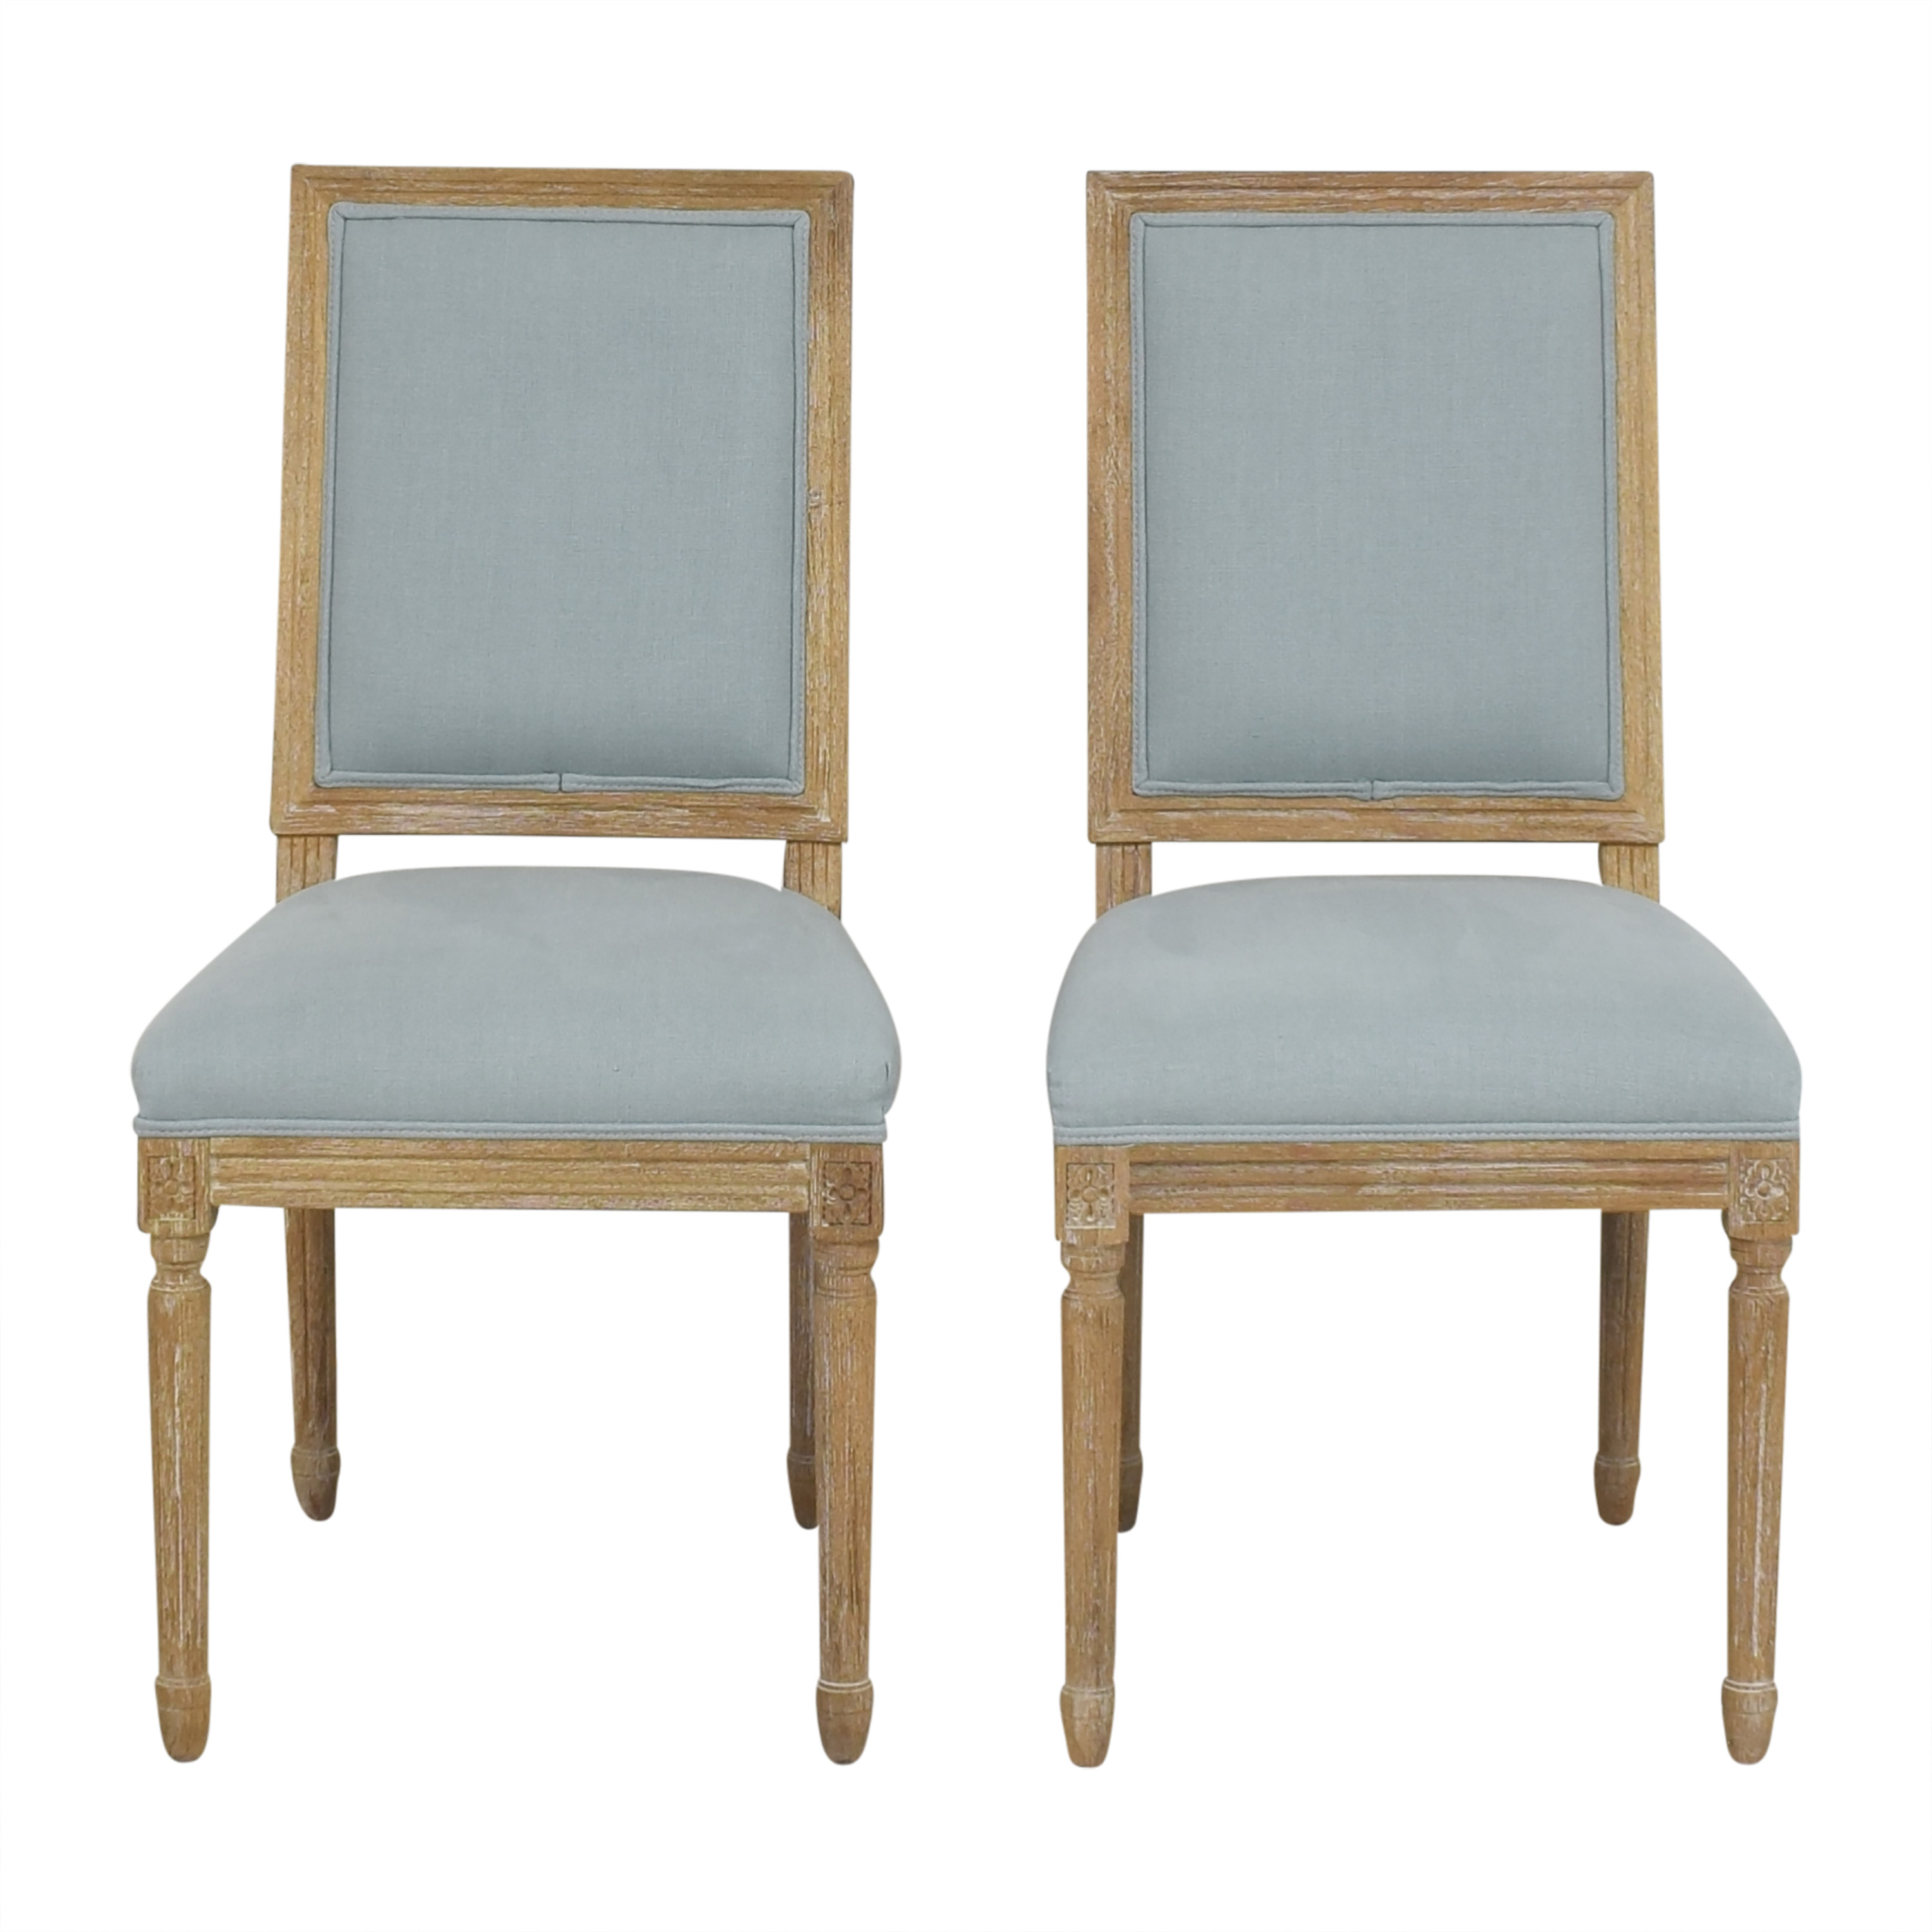 Wisteria Upholstered Dining Side Chairs / Dining Chairs